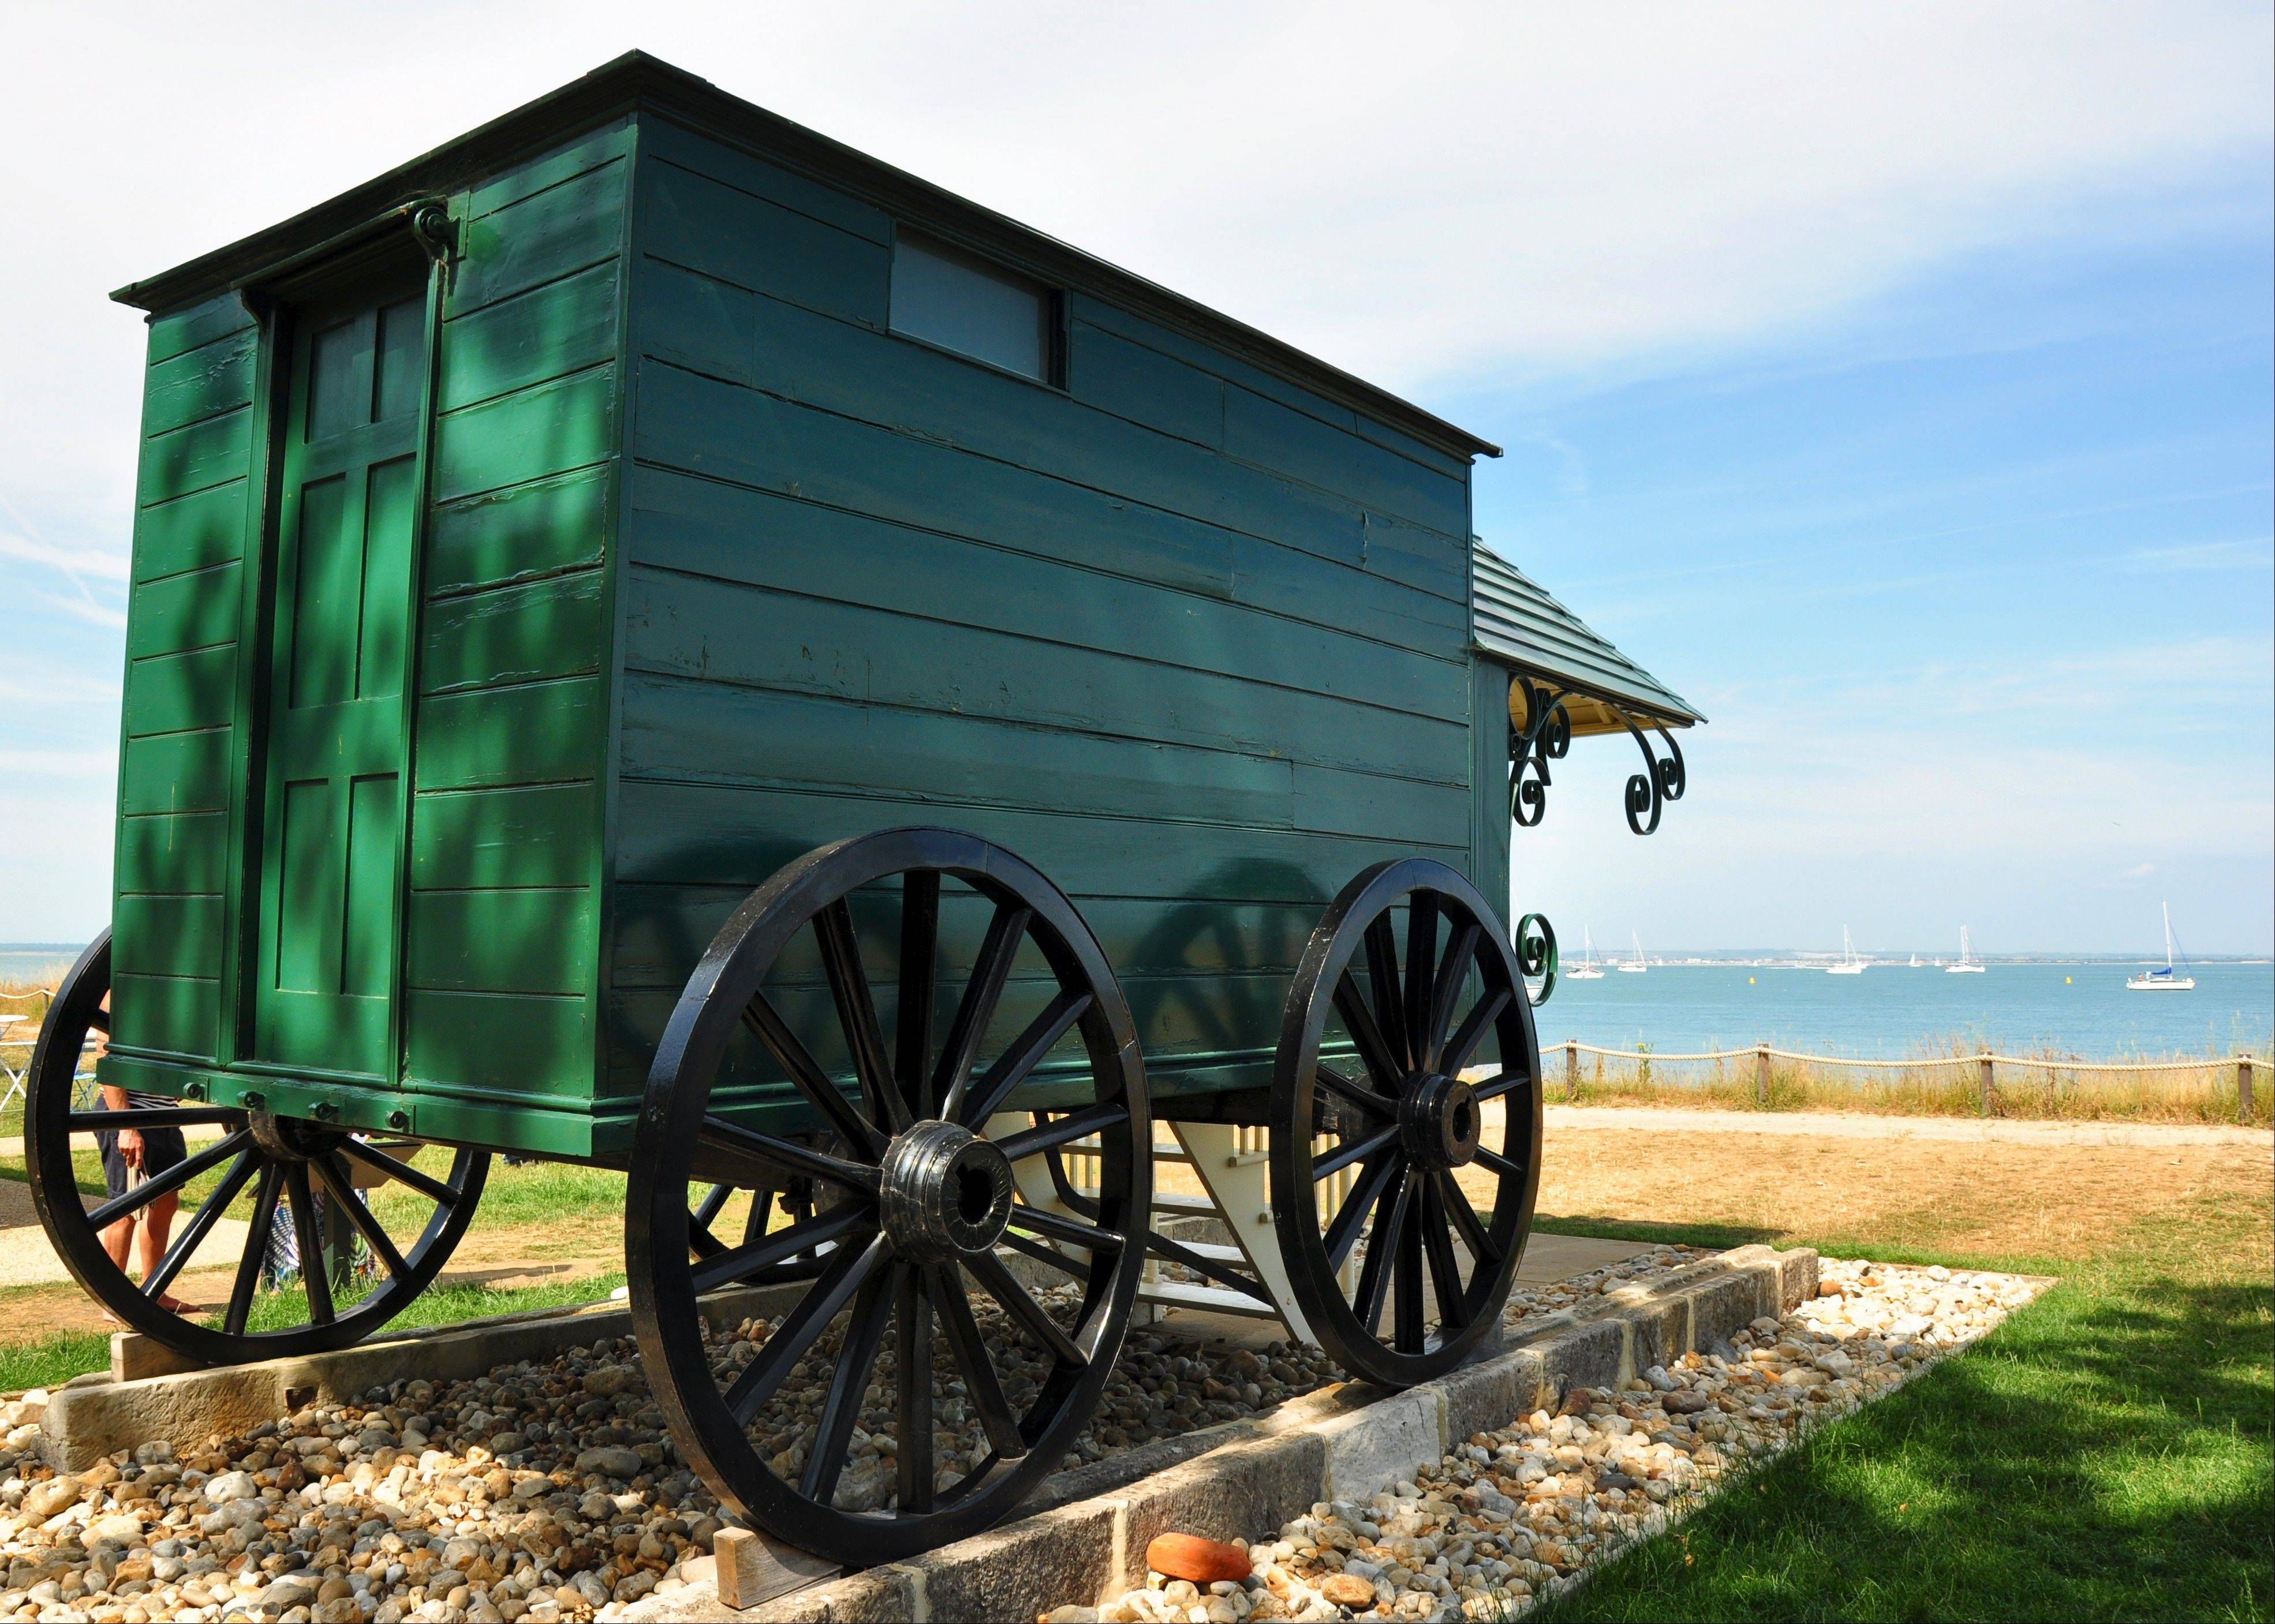 For modesty's sake, Queen Victoria used a bathing machine when she went swimming off Osborne beach. The contraption was pushed on rails into the water where she emerged in her bathing suit.